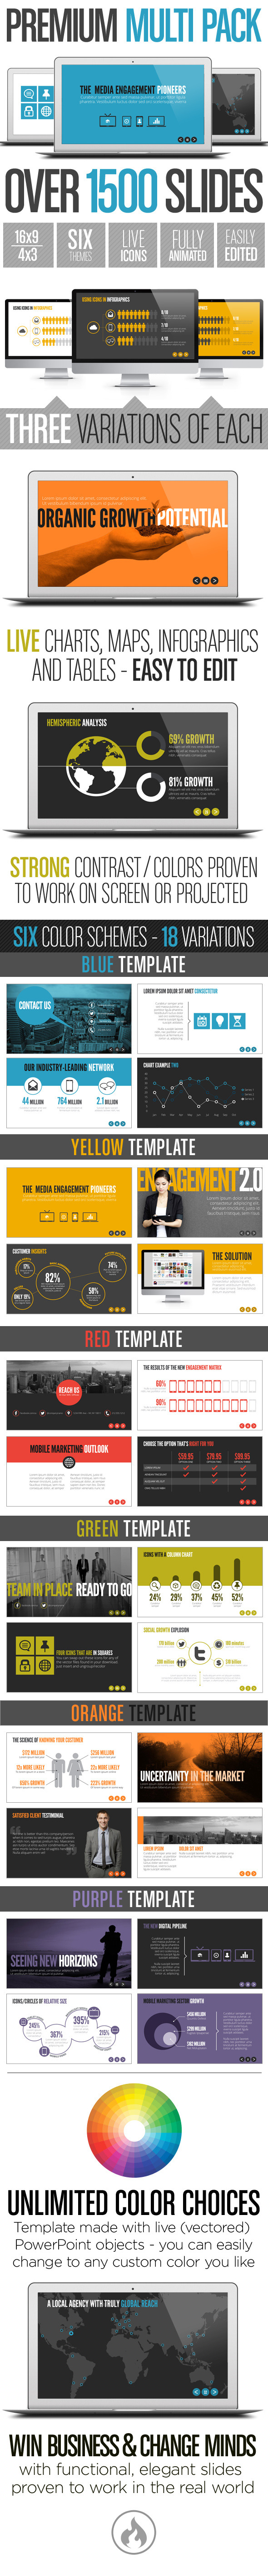 Premium Multi Pack Template System